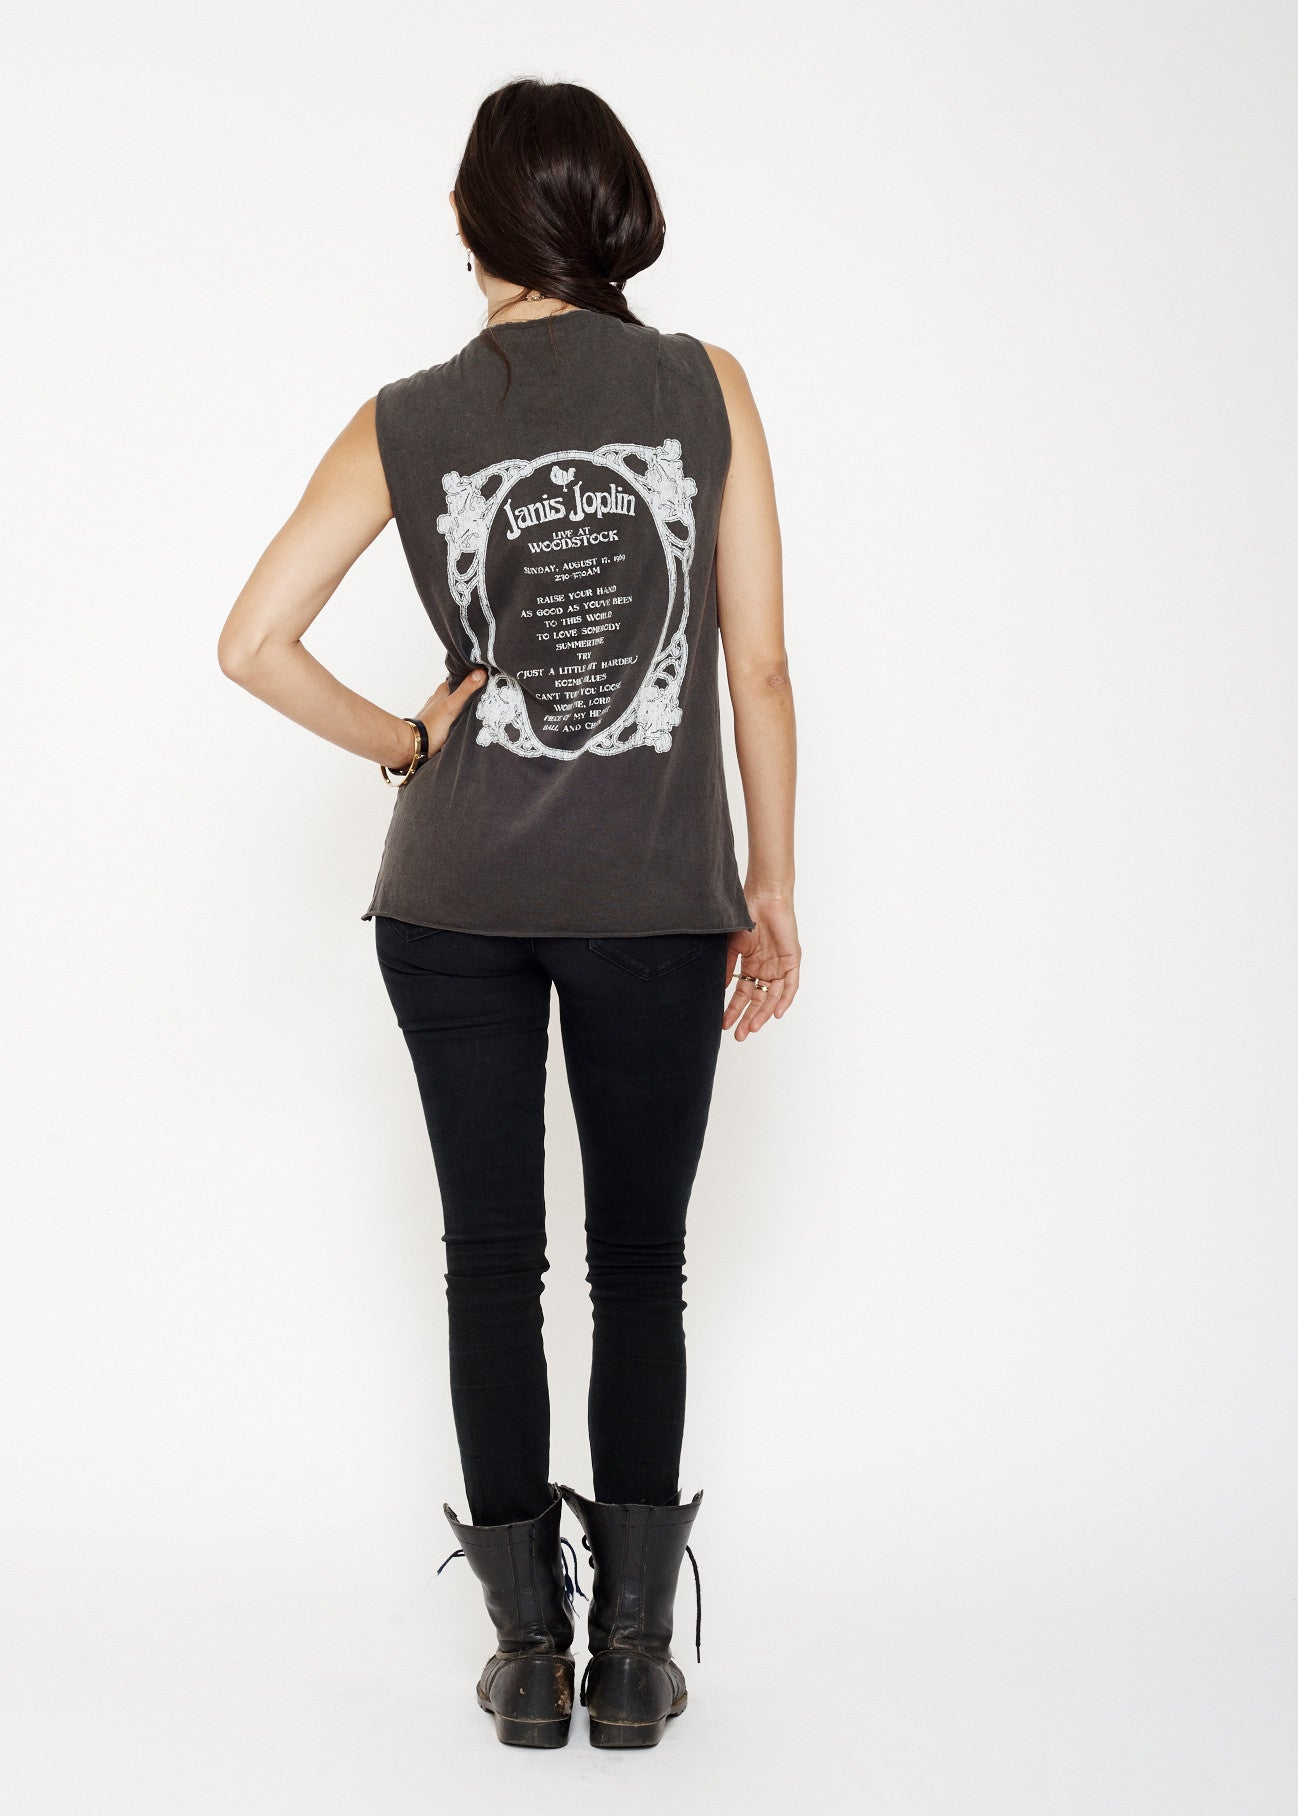 Janis Joplin Live at Woodstock Muscle Tee - Vintage Black - Women's Muscle Tee - Midnight Rider